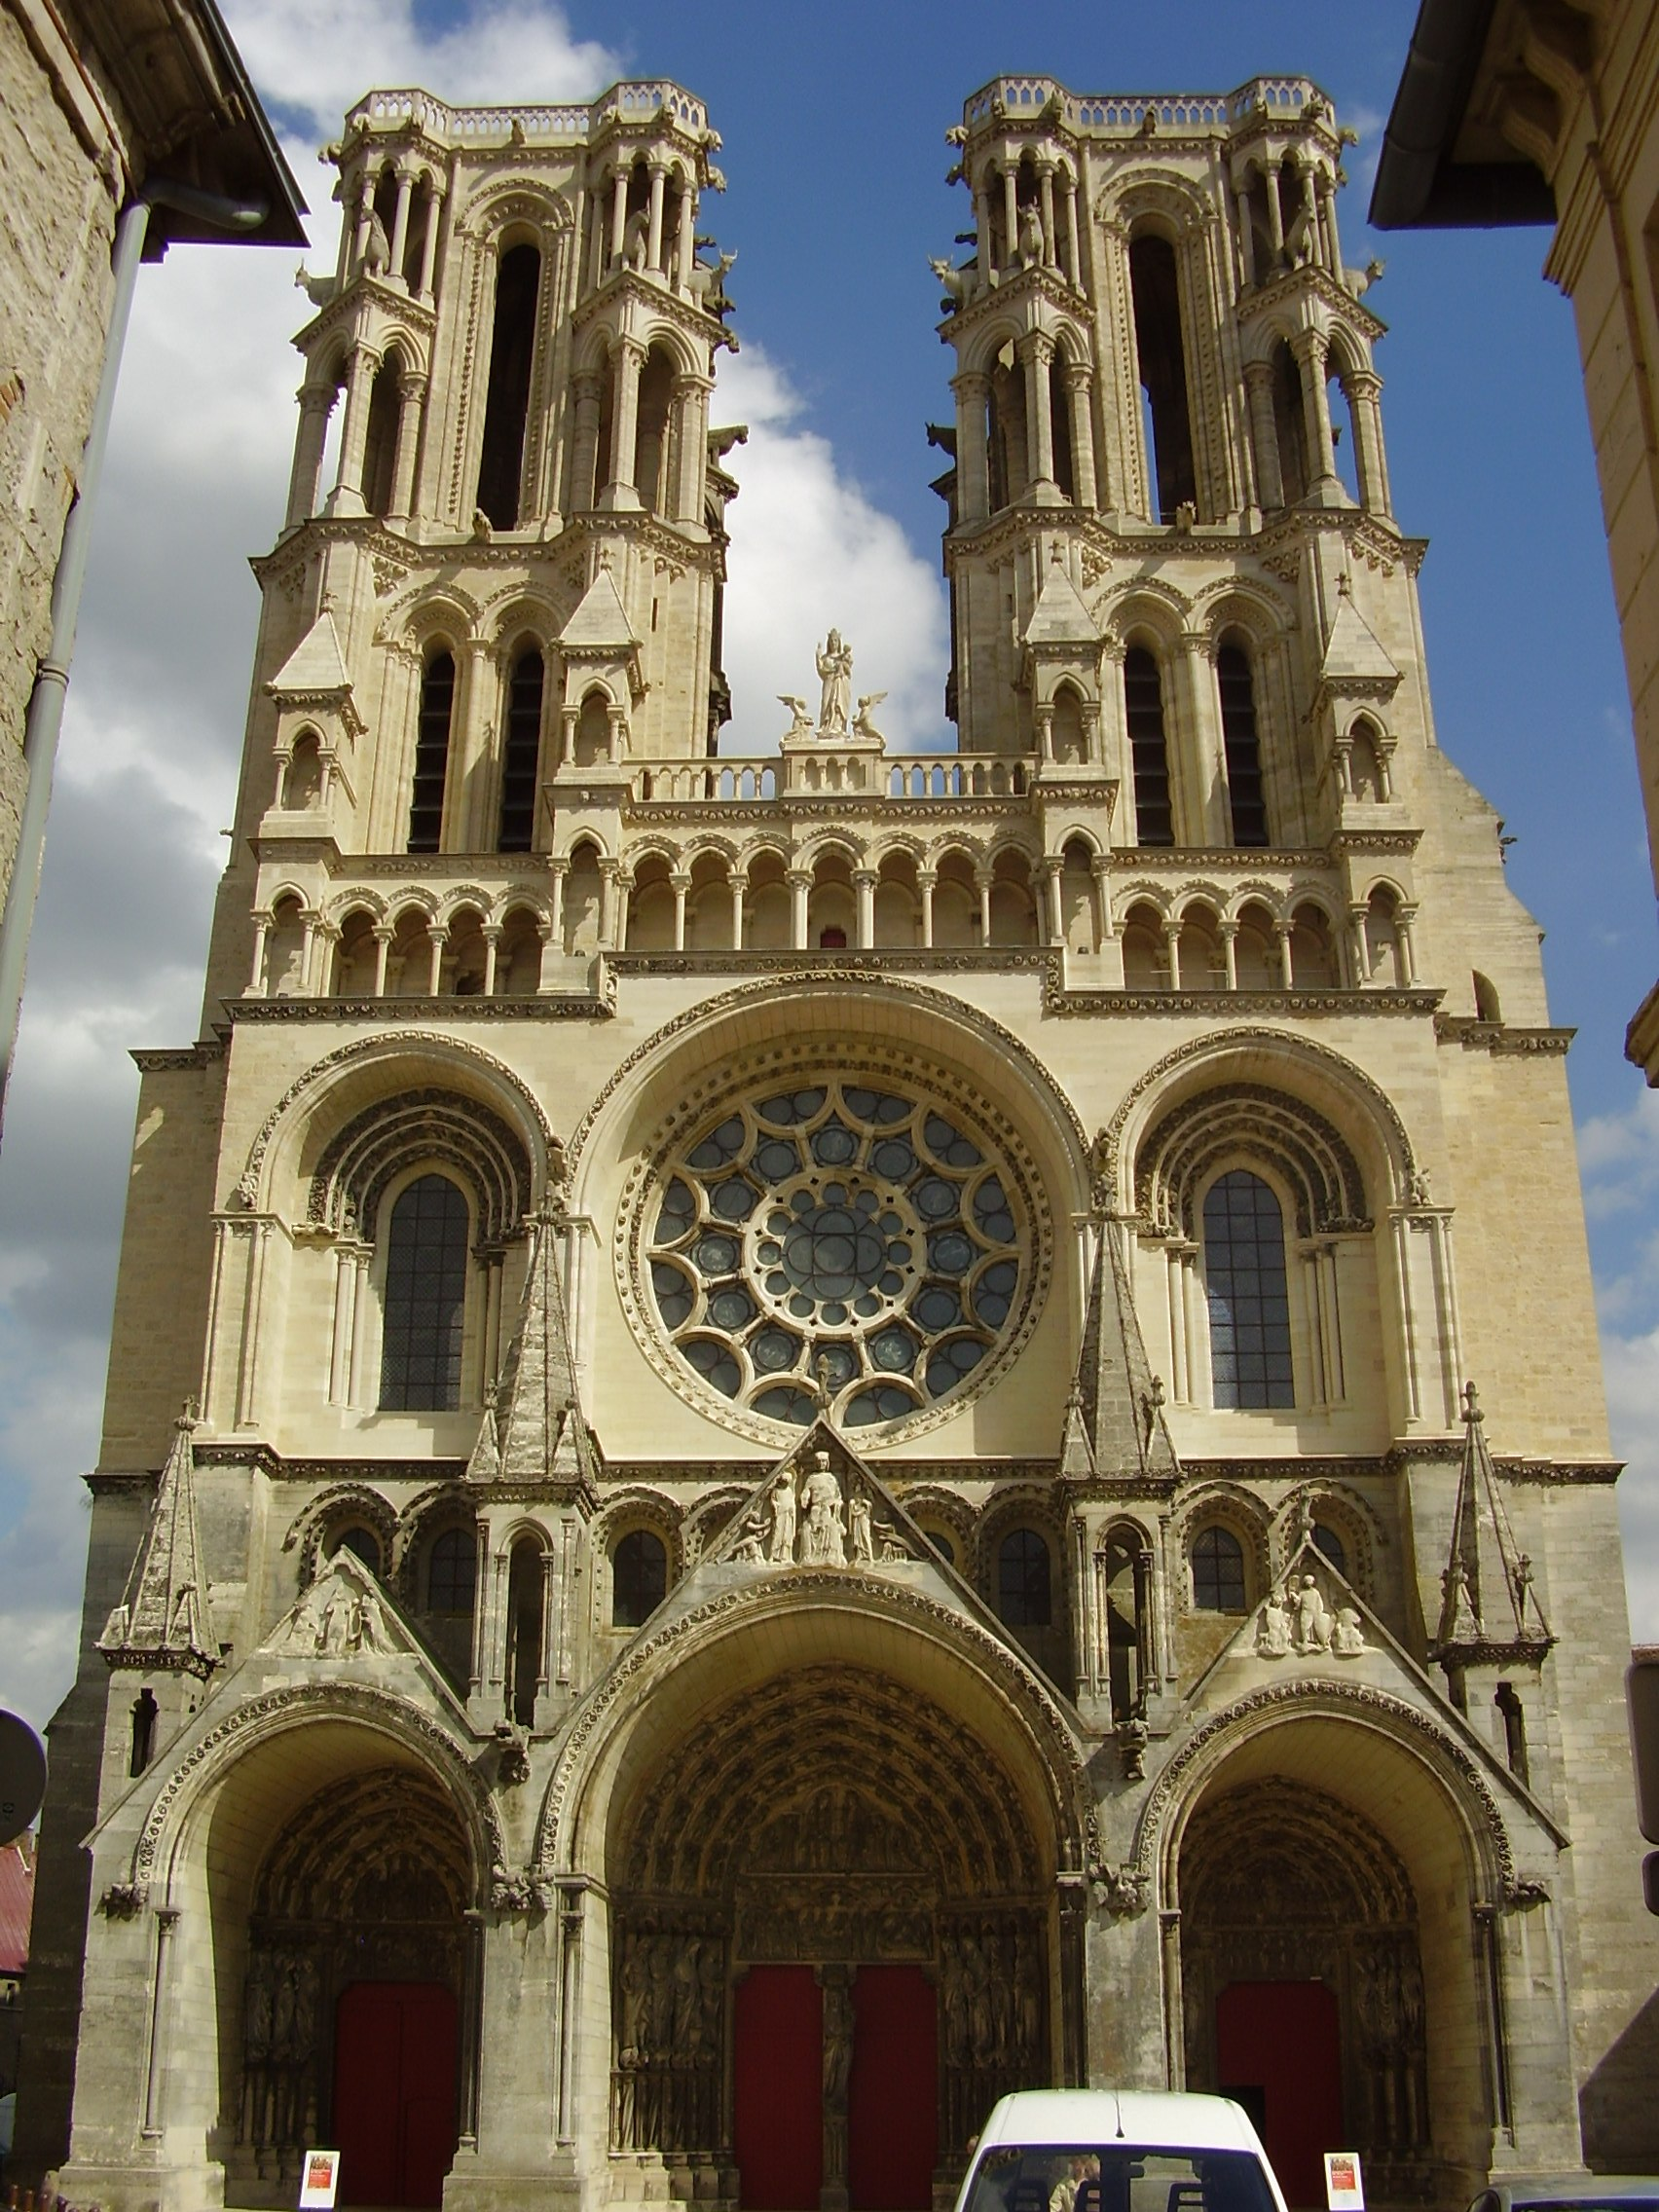 architecture of the medieval cathedrals of Medieval cathedrals were the most obvious sign of the wealth of the church in medieval england huge cathedrals were found principally at canterbury and york, and in major cities such as lincoln, worcester, and chichester.